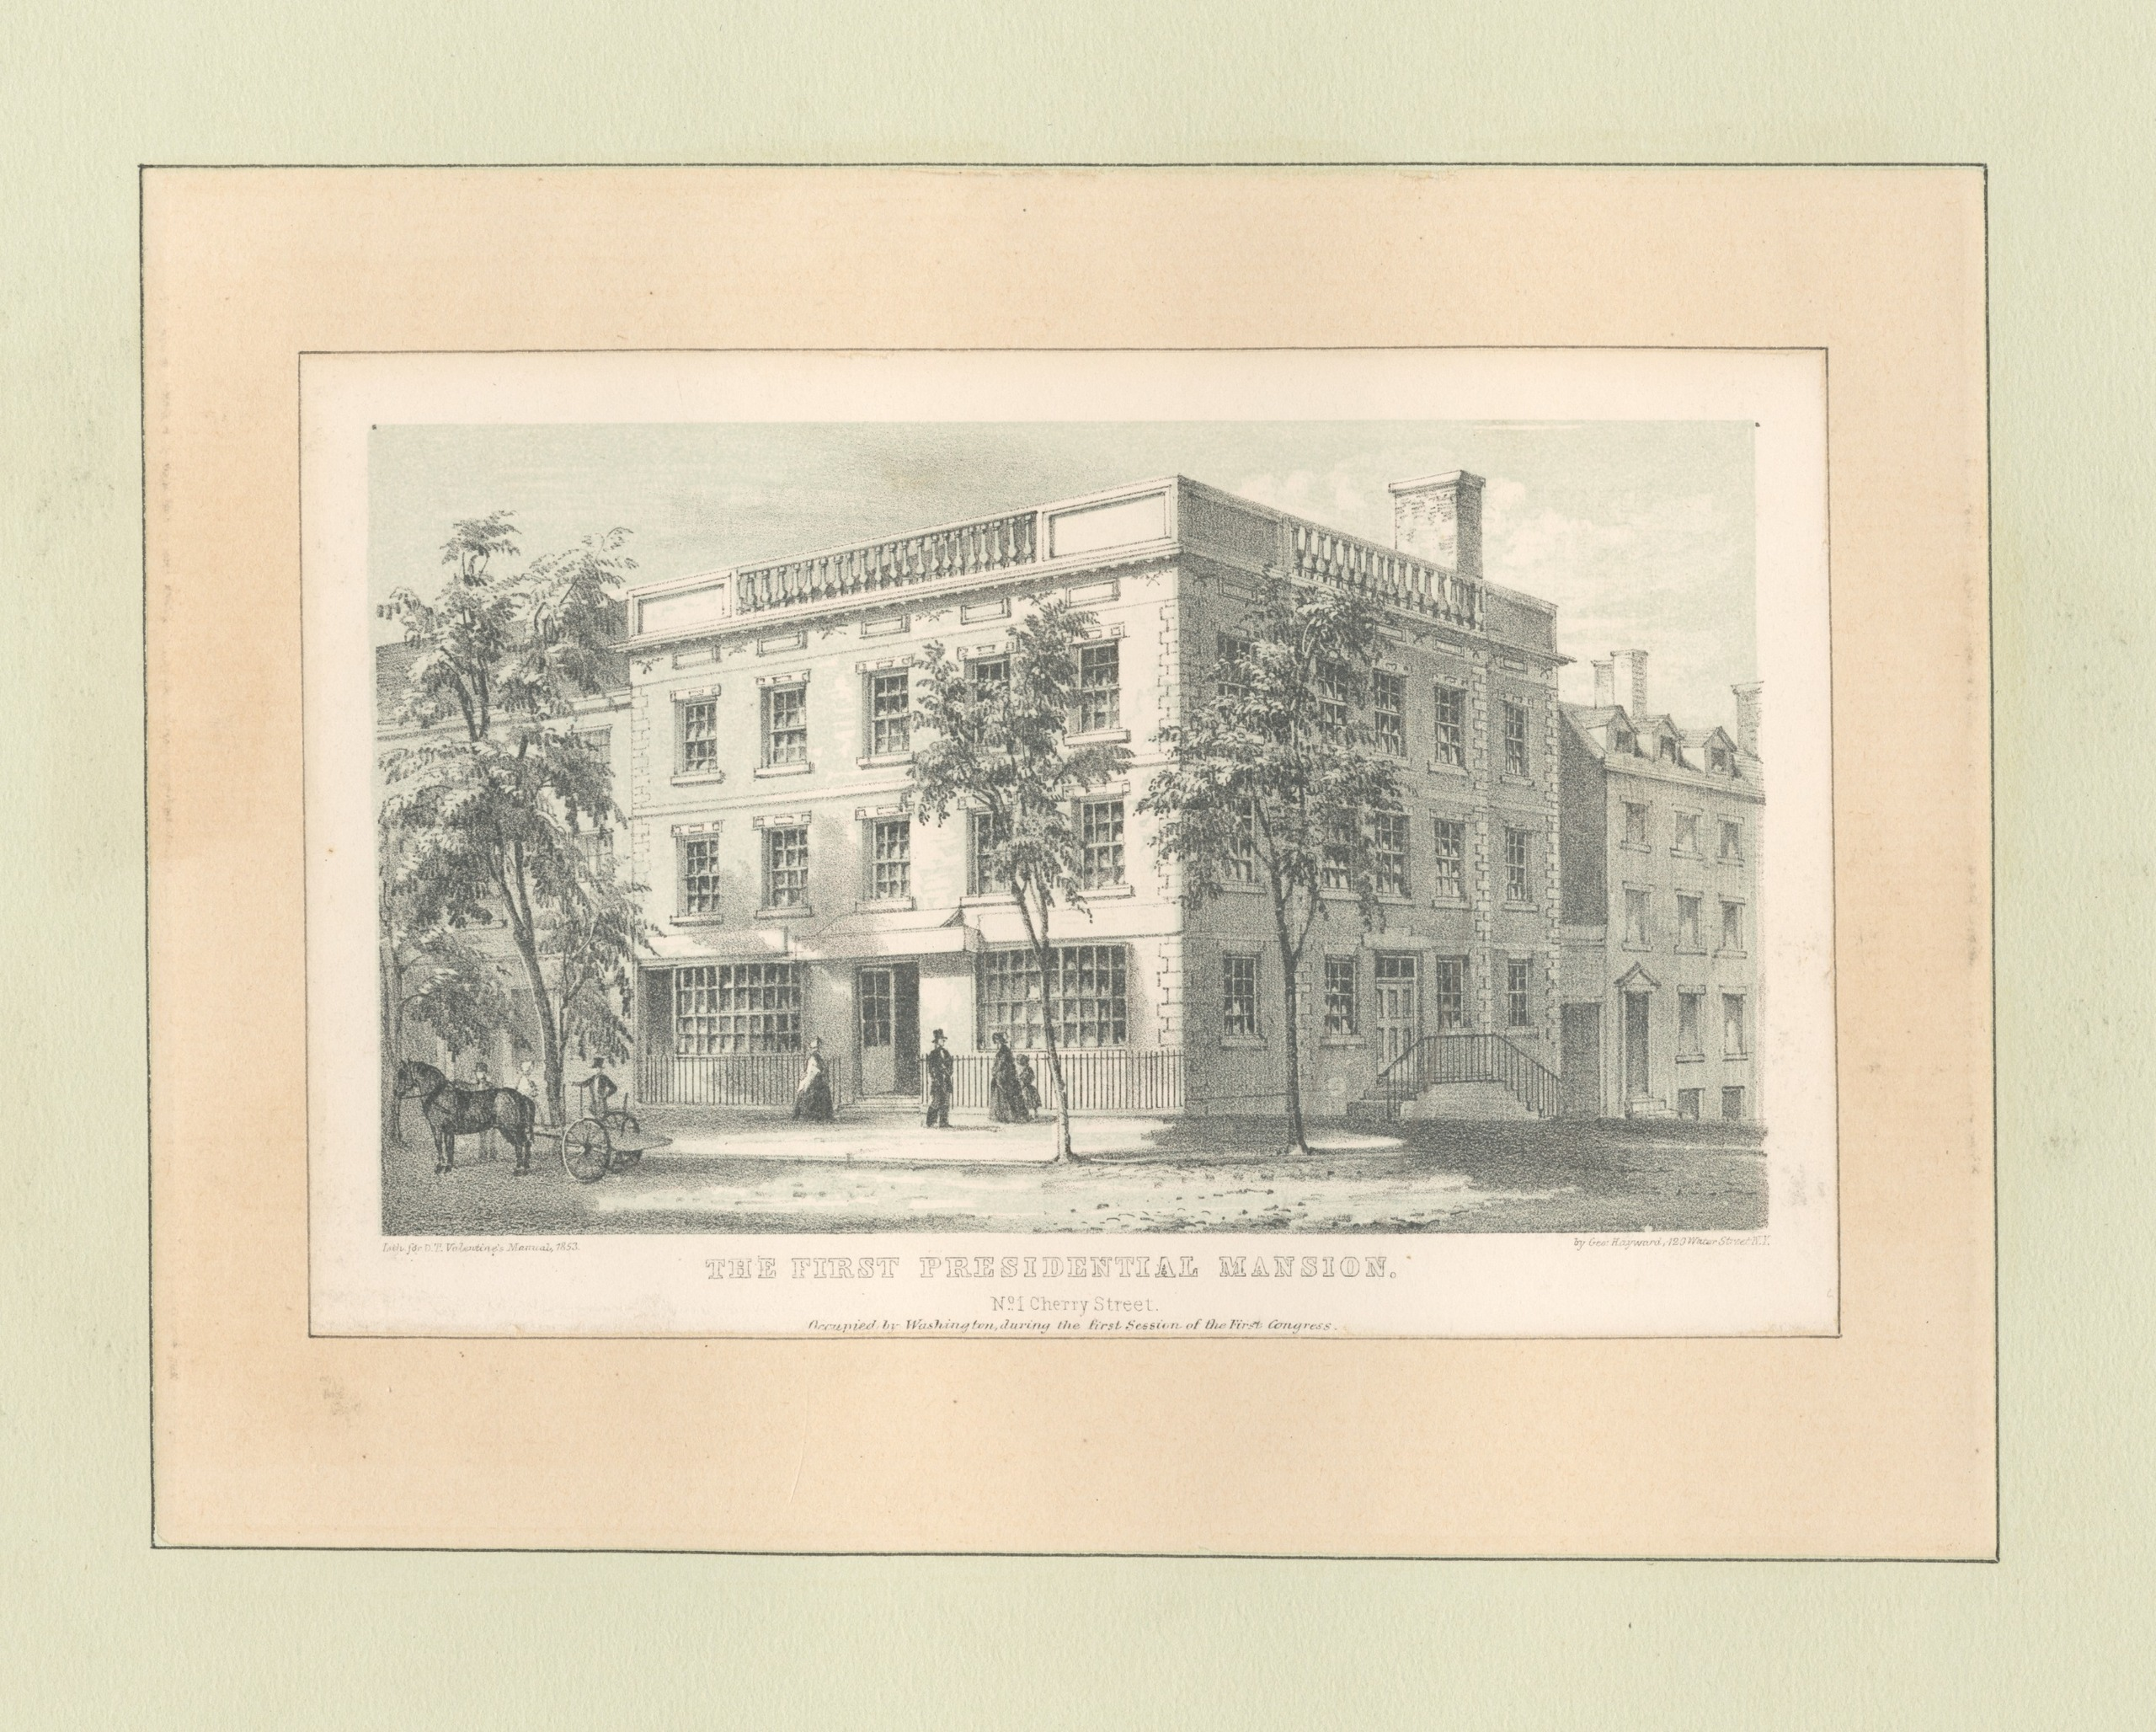 The first presidential mansion at 1 Cherry Street. Credit: NYPL